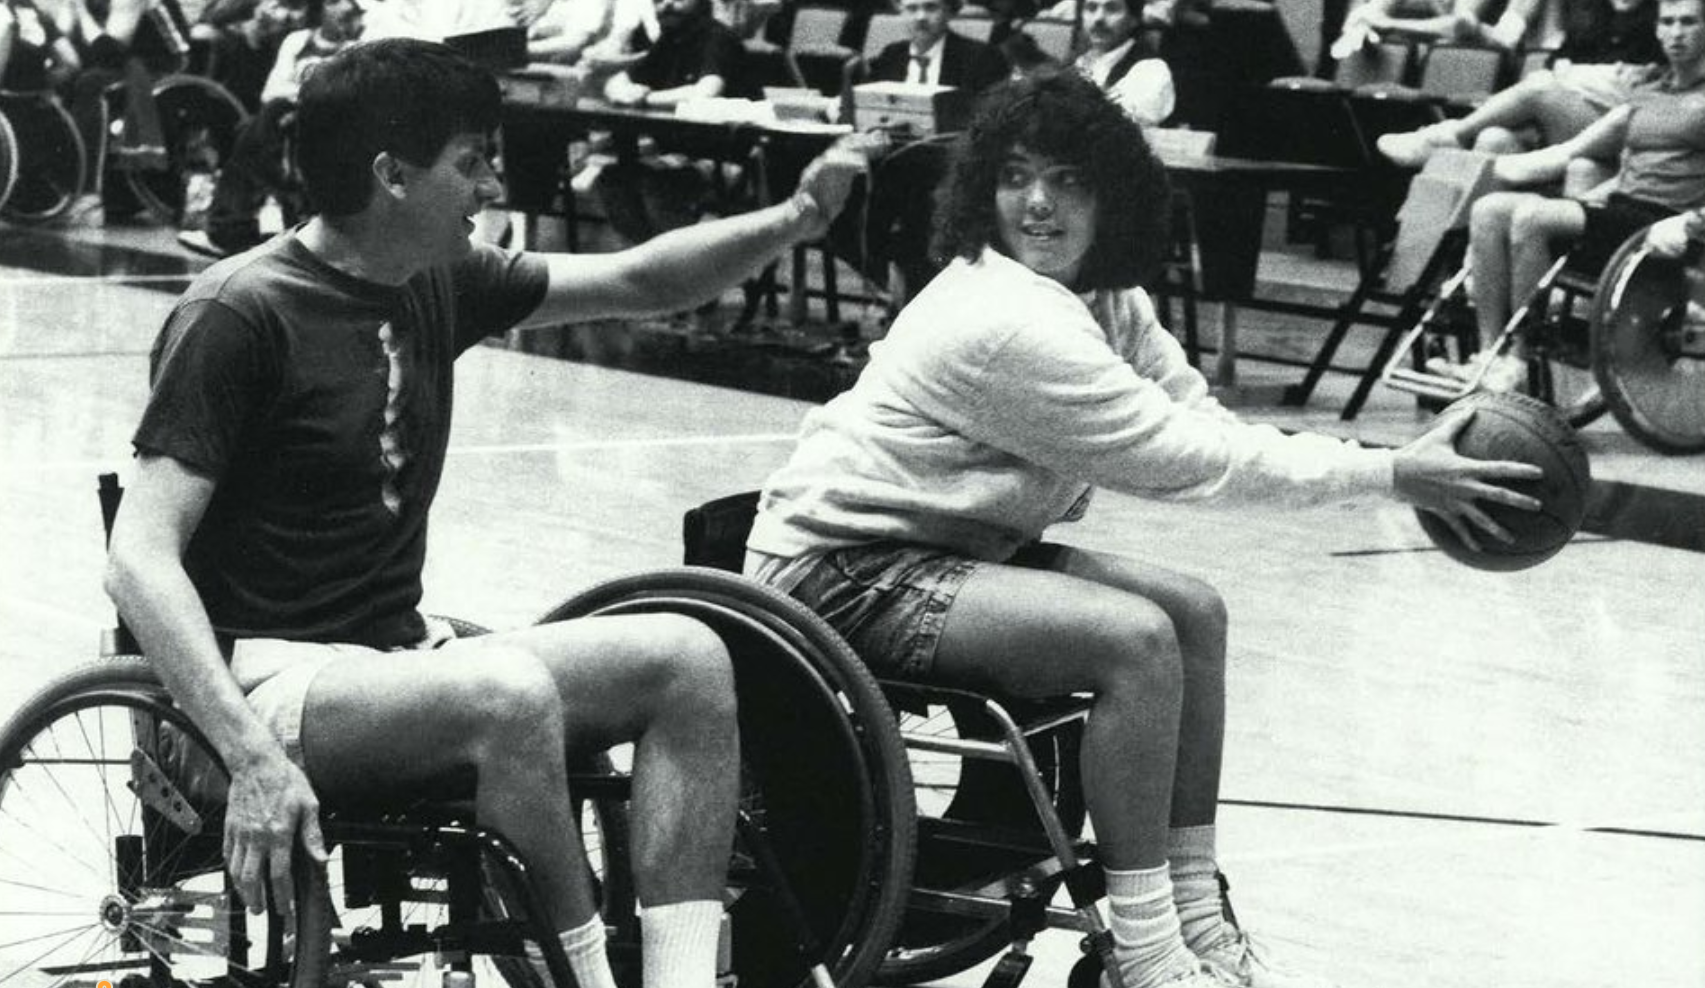 A black and white photo of two people in wheelchairs on a basketball court. One student is holding a basketball away from another student who is raising an arm as if to block her pass.